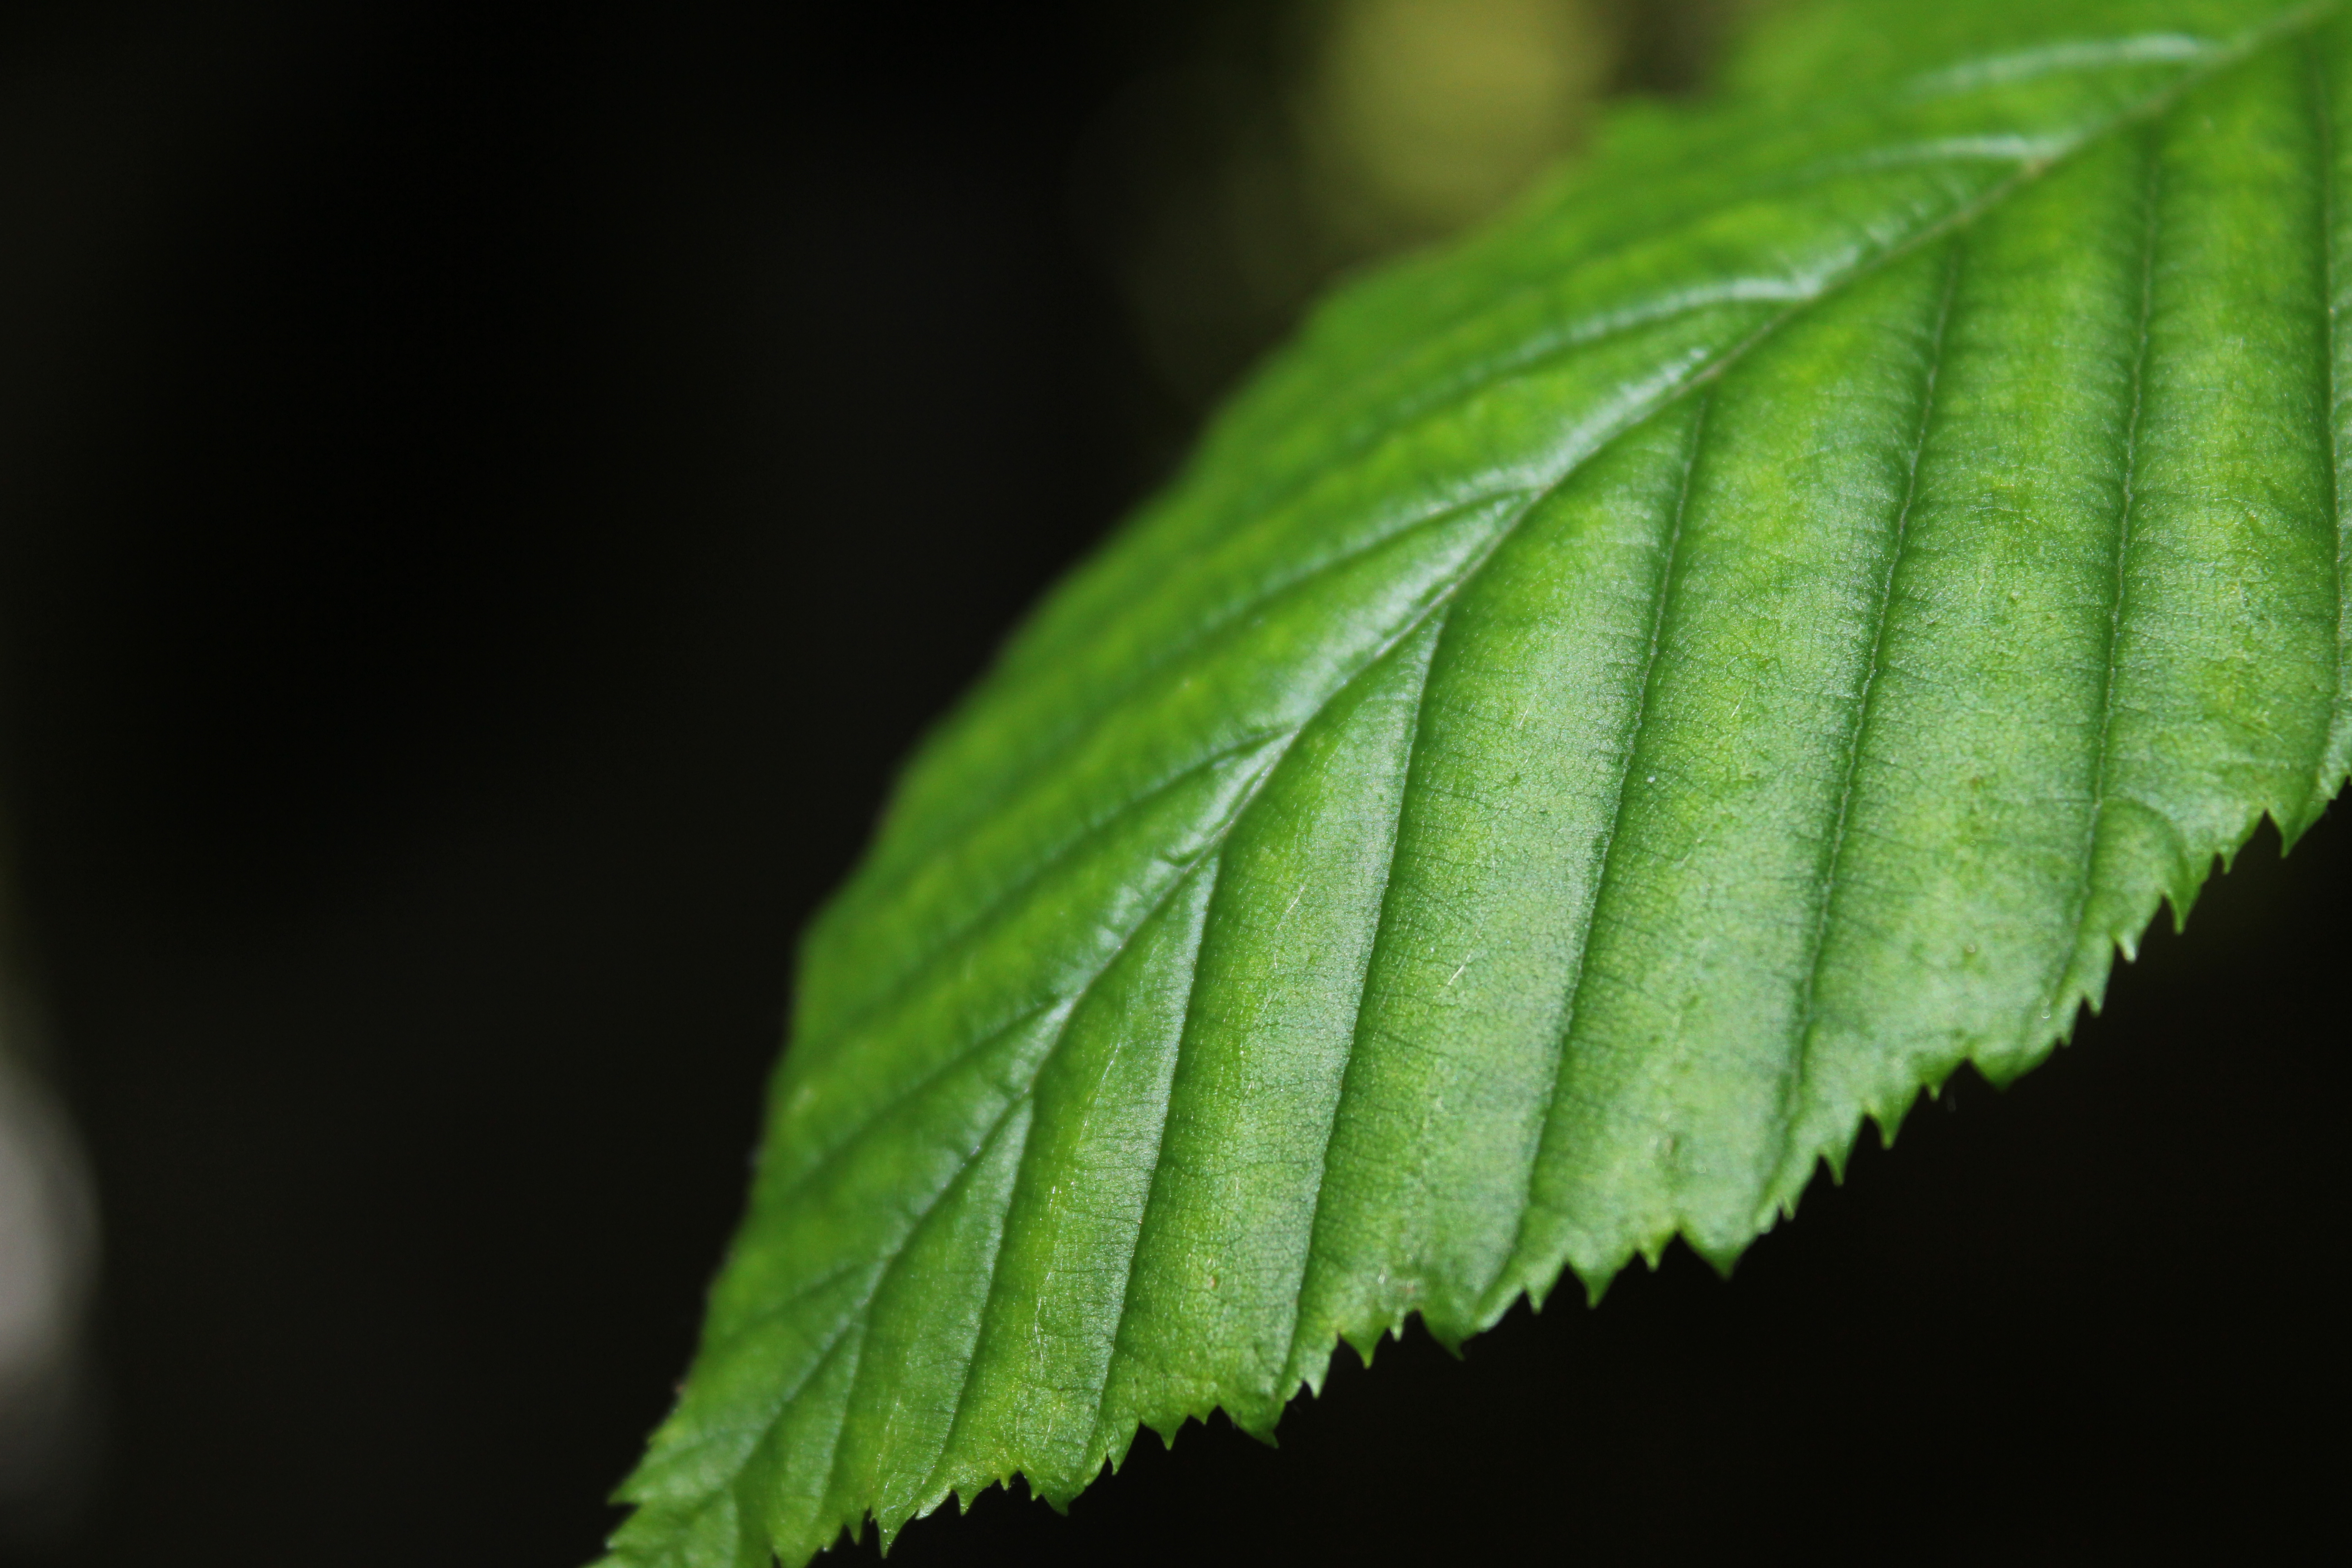 Best Iphone 4 Wallpapers Hd Green Leaf Plant 183 Free Stock Photo